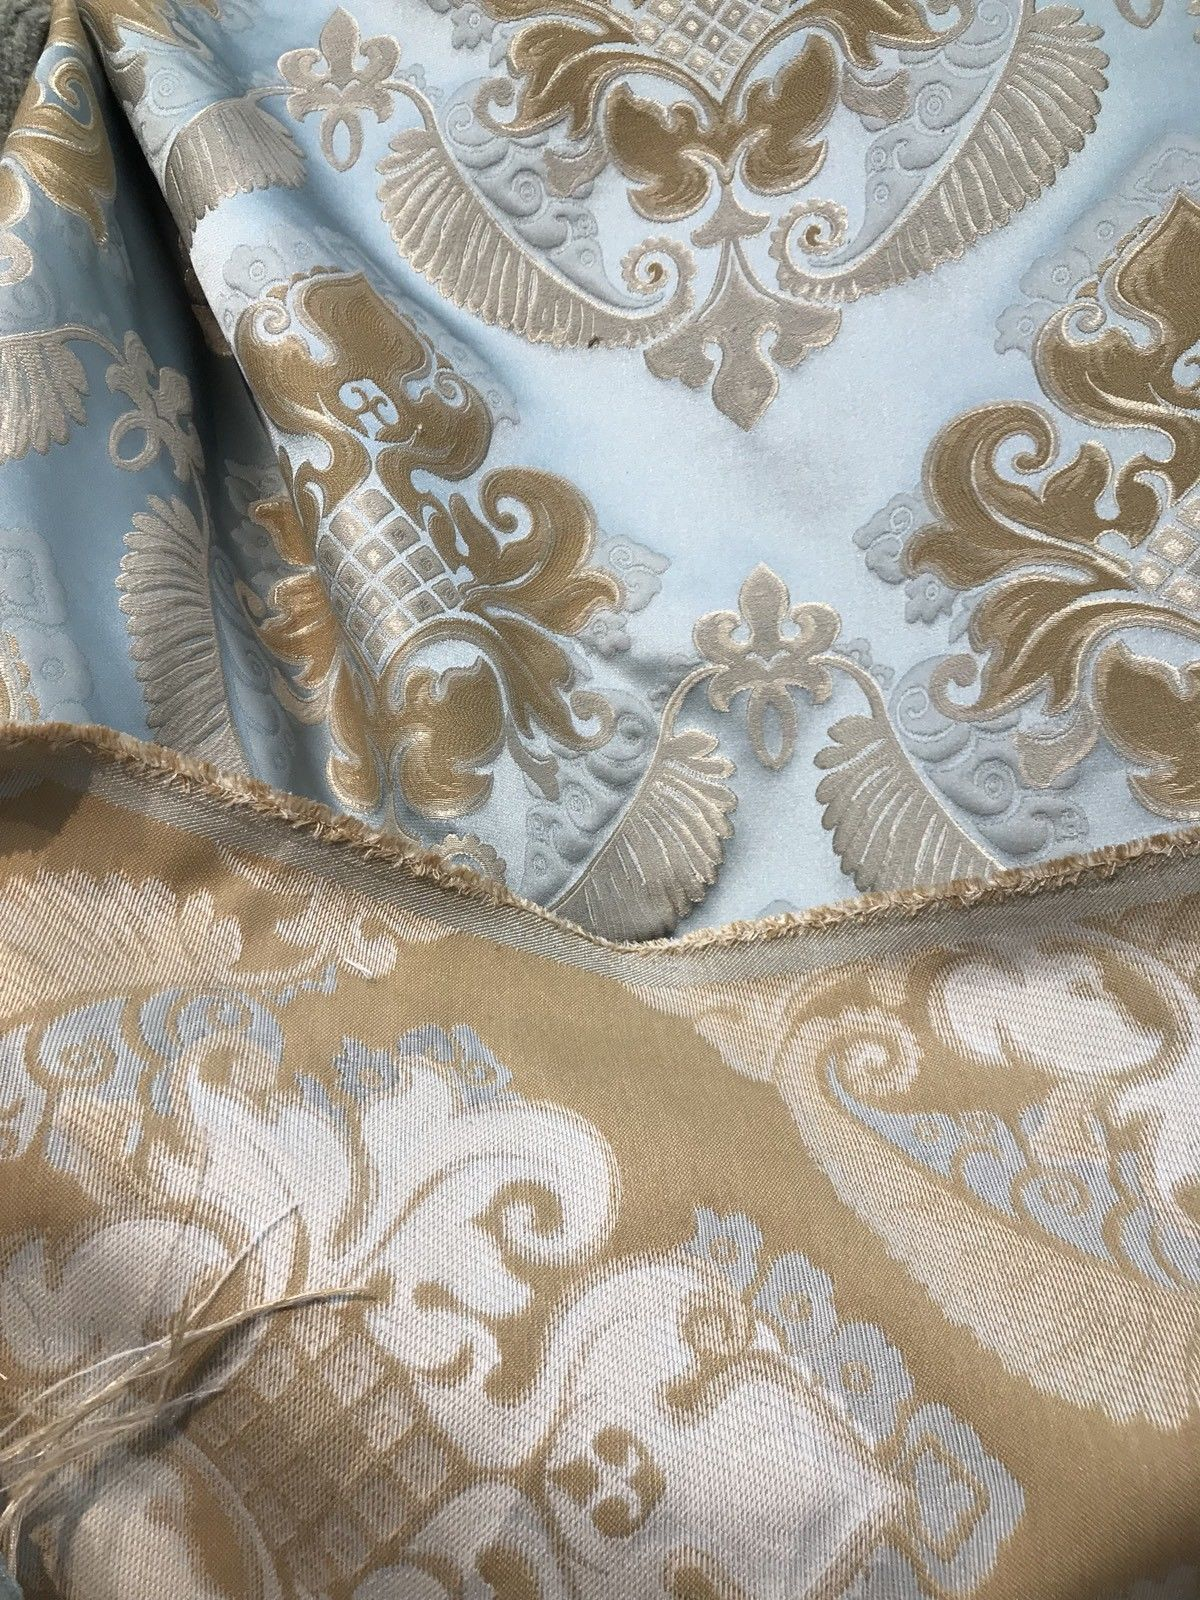 Designer Brocade Satin Fabric- Antique Blue & Honey - Damask- Upholstery - Fancy Styles Fabric Pierre Frey Lee Jofa